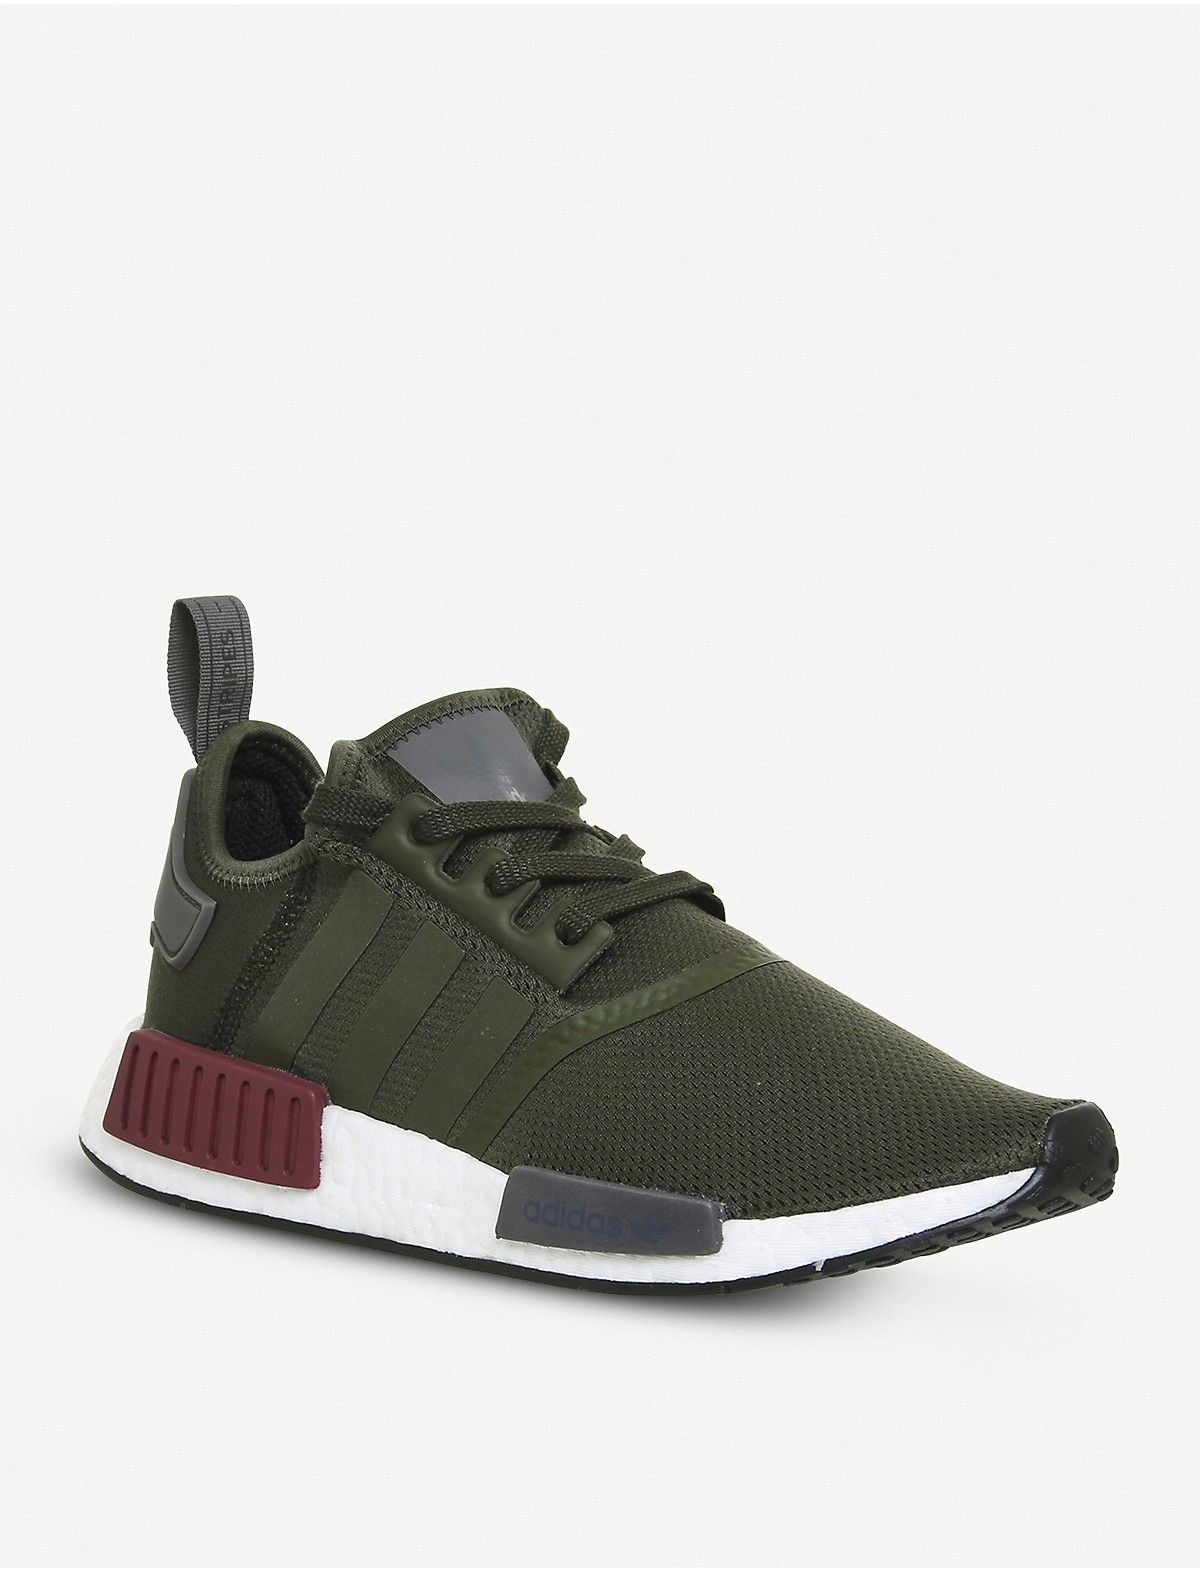 nmd runner delle scarpe nmd, adidas nmd e adidas